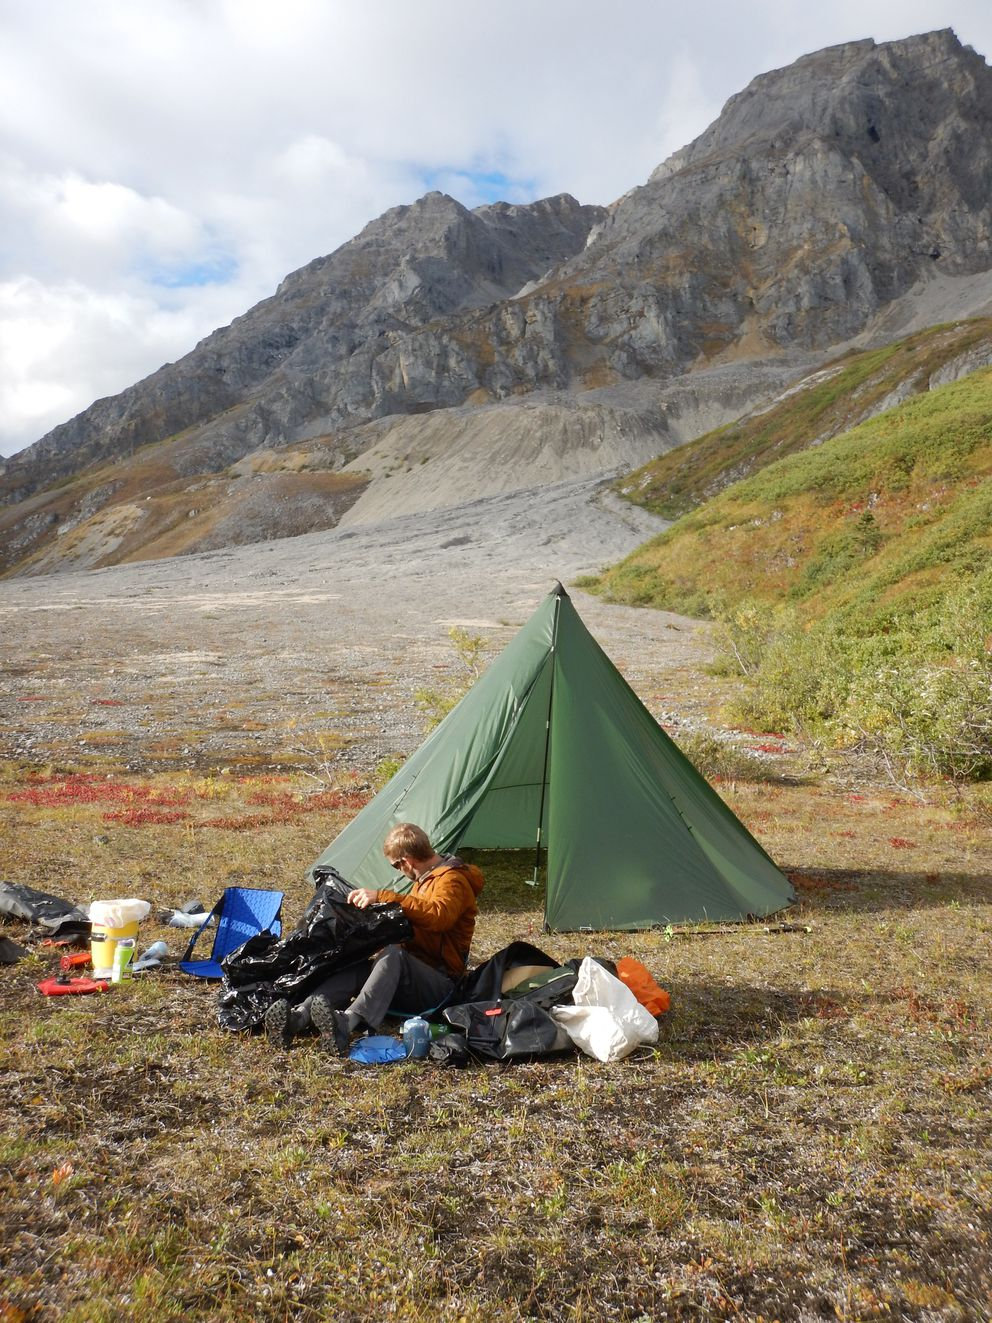 Wrangell-St. Elias National Park and Preserve geologist Mike Loso at base camp. Behind him rise the mountains where an ichthyosaur was rediscovered. (Pat Druckenmiller)